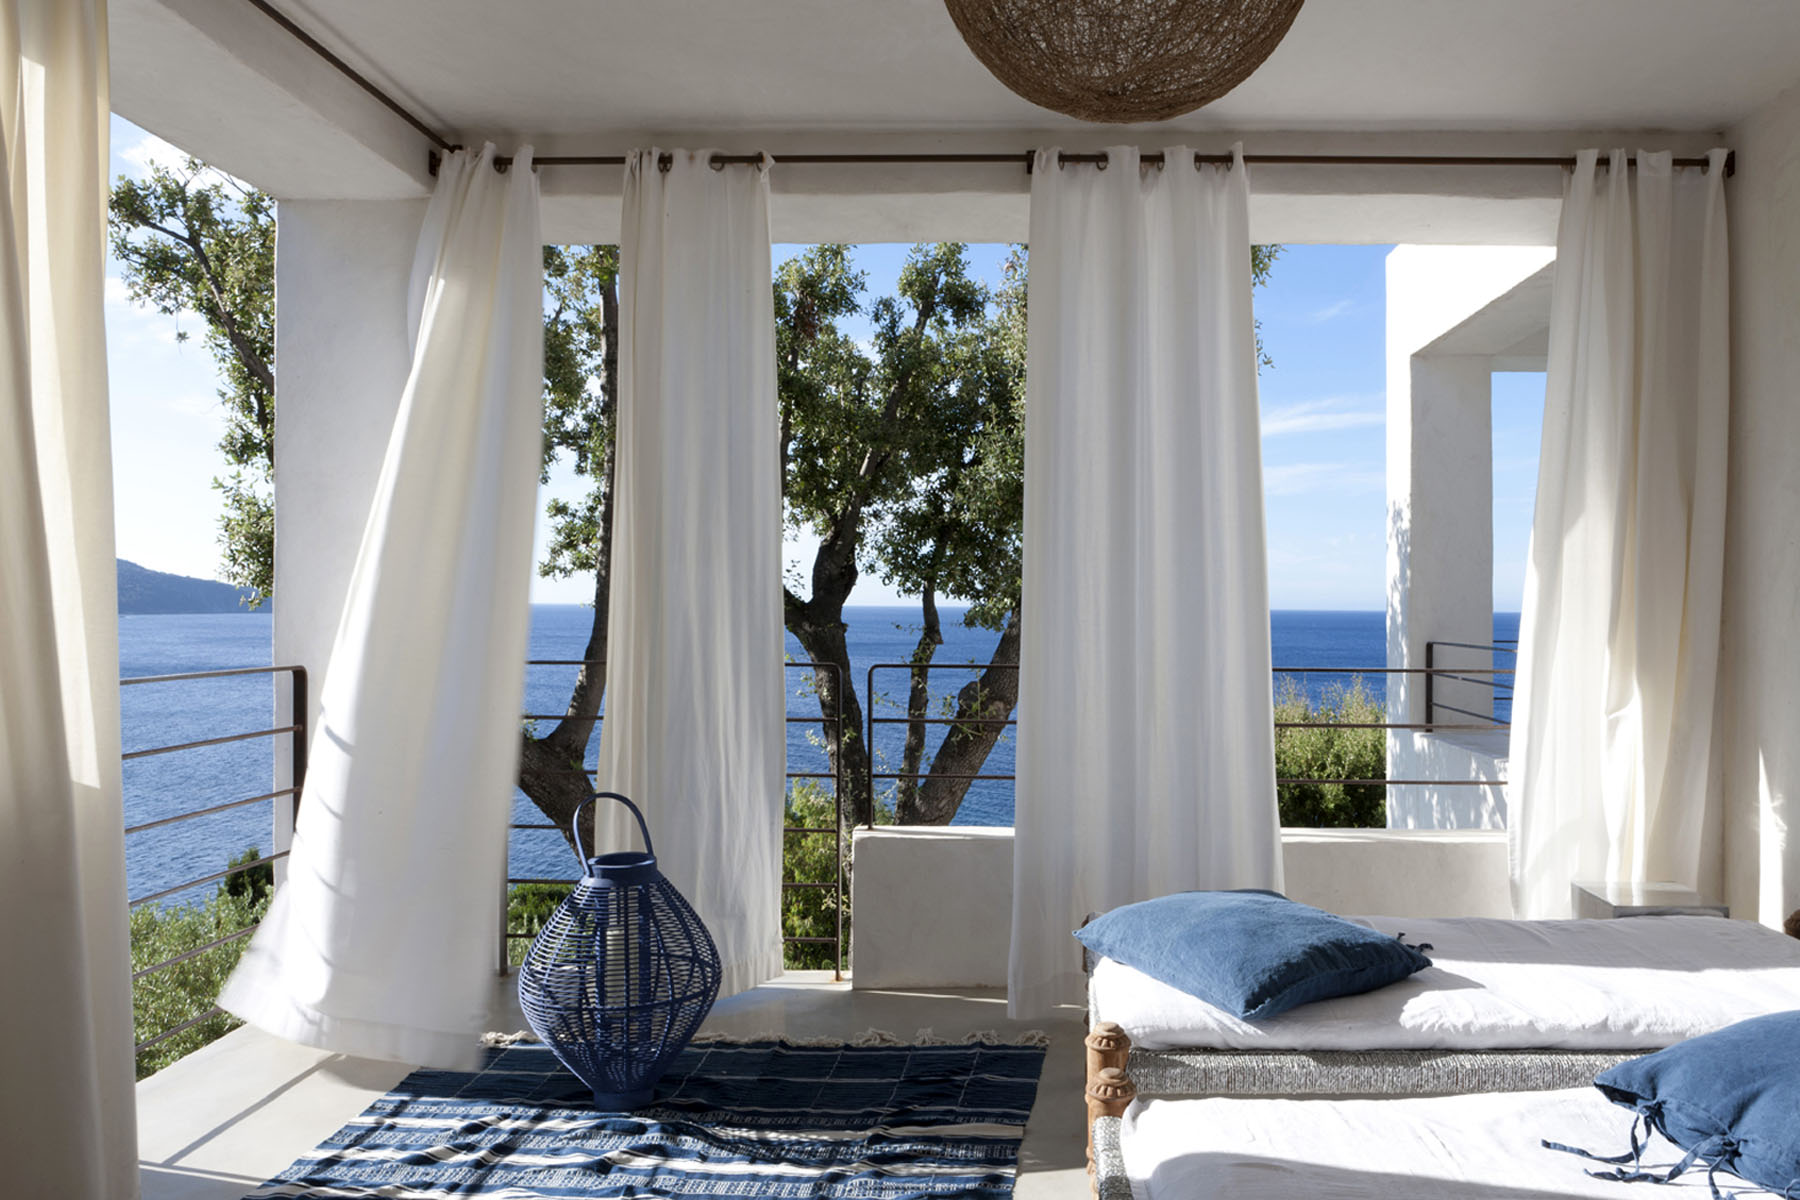 2-Florence_Watine_Architecte_Designer_Decoratrice_Decoration_Paris_France_St_Tropez_Maison_Villa_Mediterranee_Design